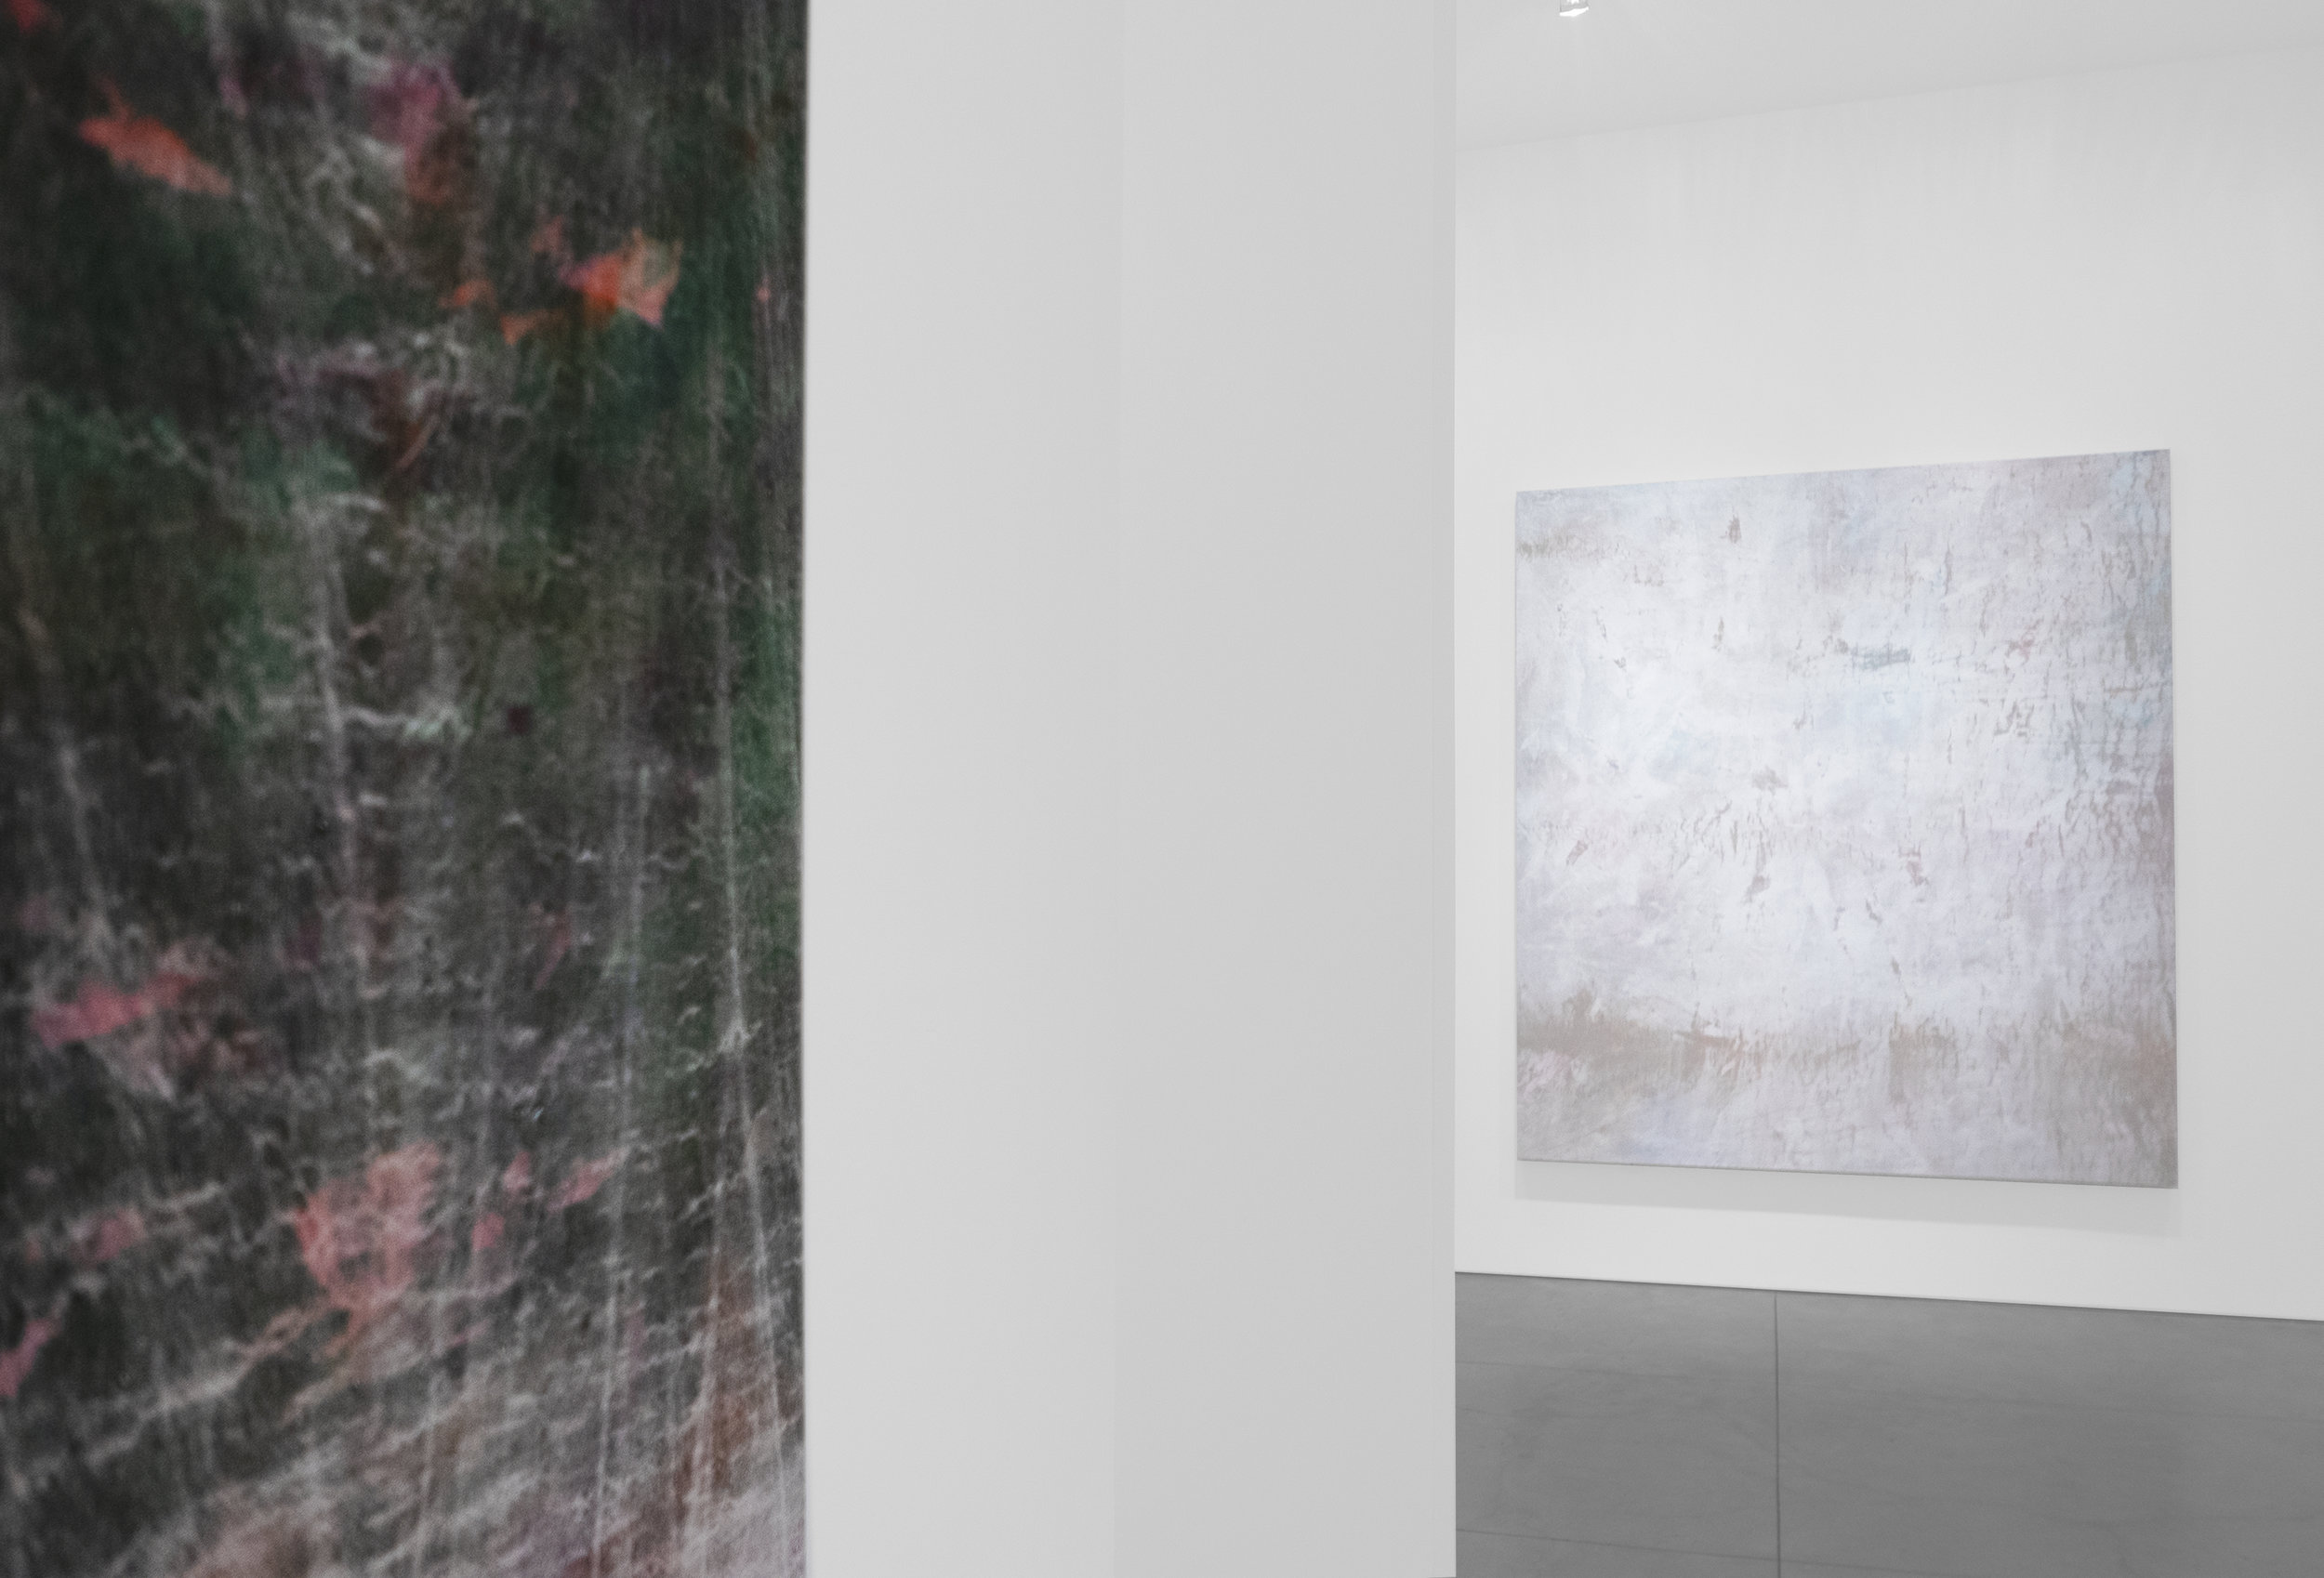 Cole Sternberg Solo Exhibition 2019_Peter Blake Gallery_Installation View_27.jpg